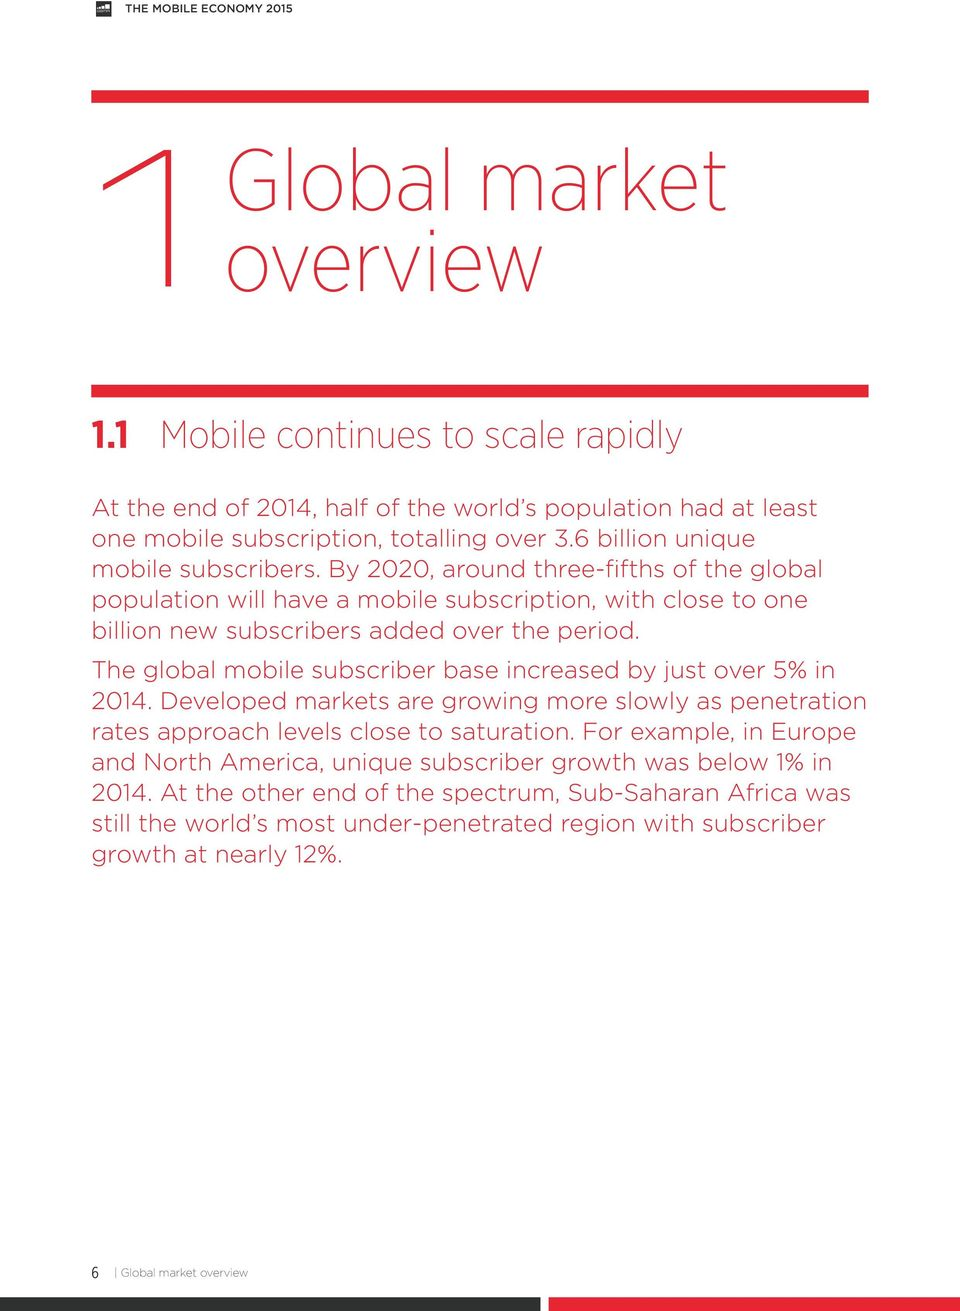 The global mobile subscriber base increased by just over 5% in 2014. Developed markets are growing more slowly as penetration rates approach levels close to saturation.